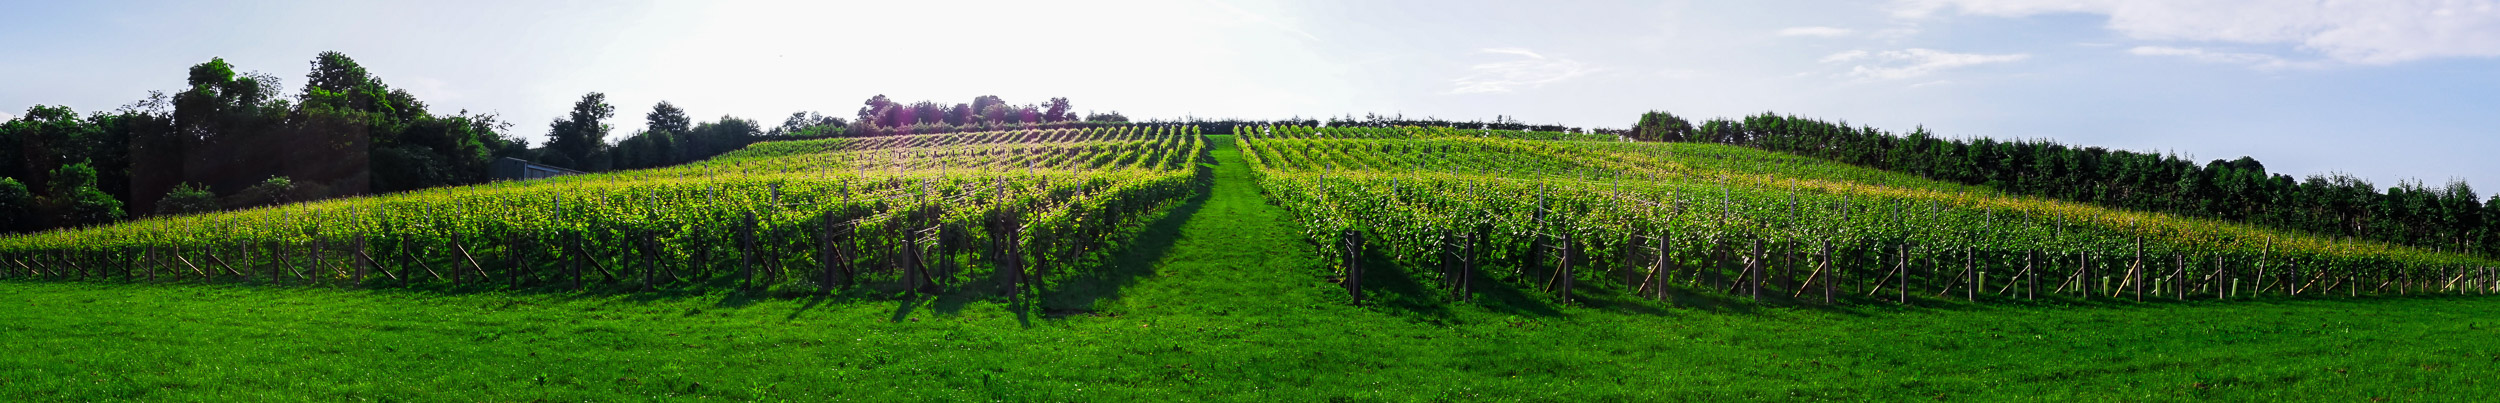 Meopham-Valley-Vineyard-Kent-English-Wine-Tour-3